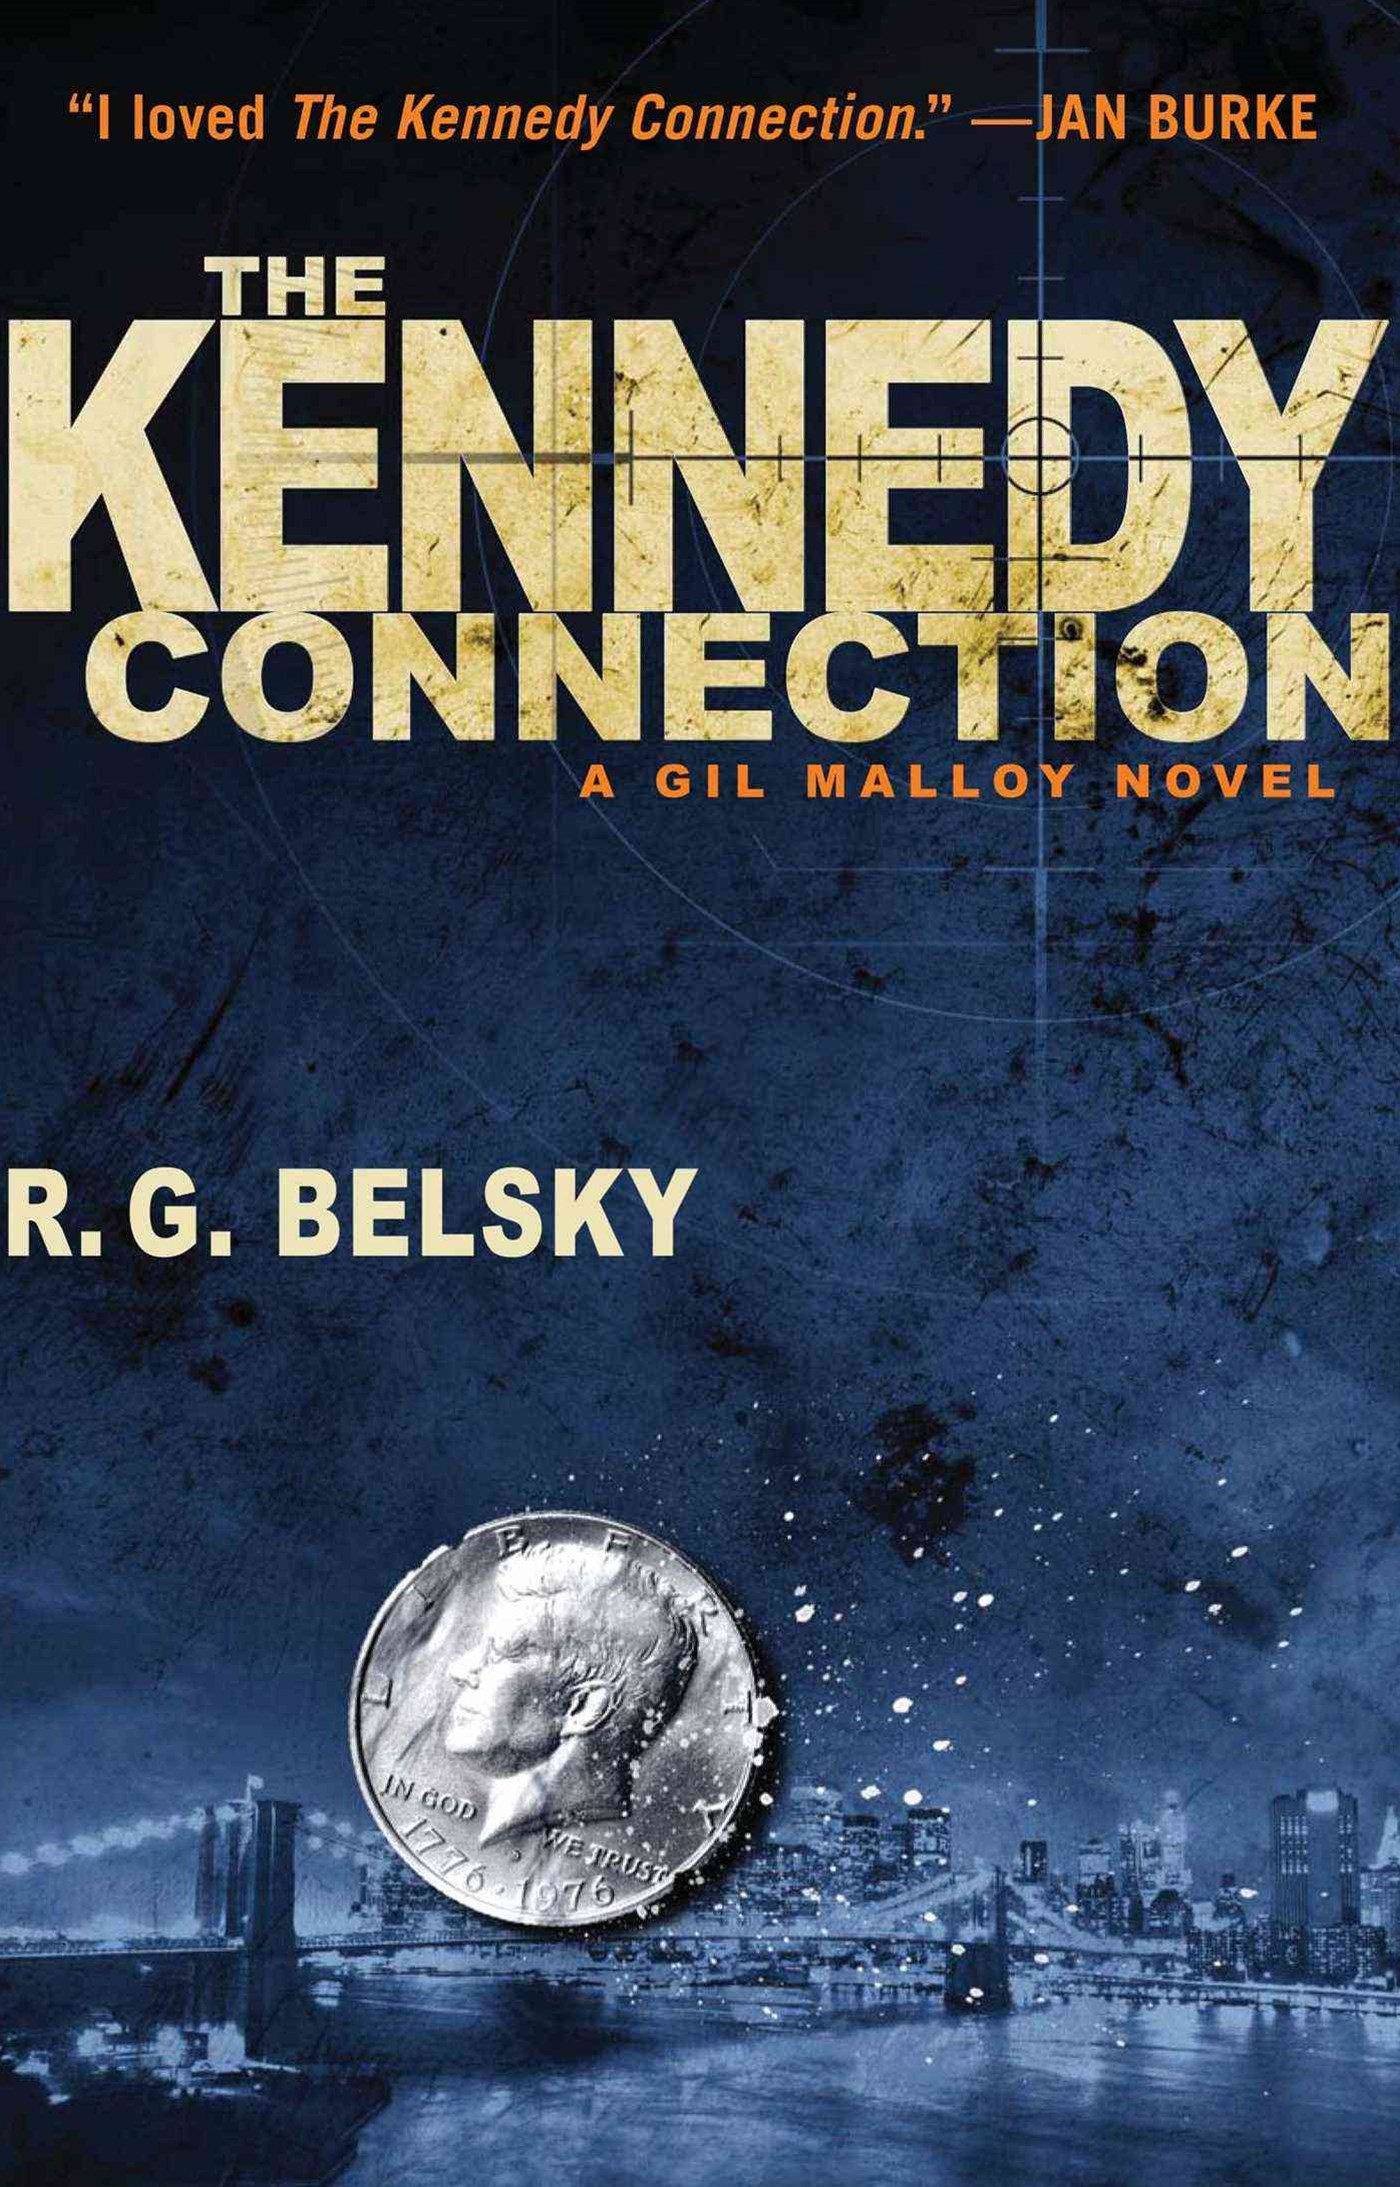 The Kennedy Connection: A Gil Malloy Novel